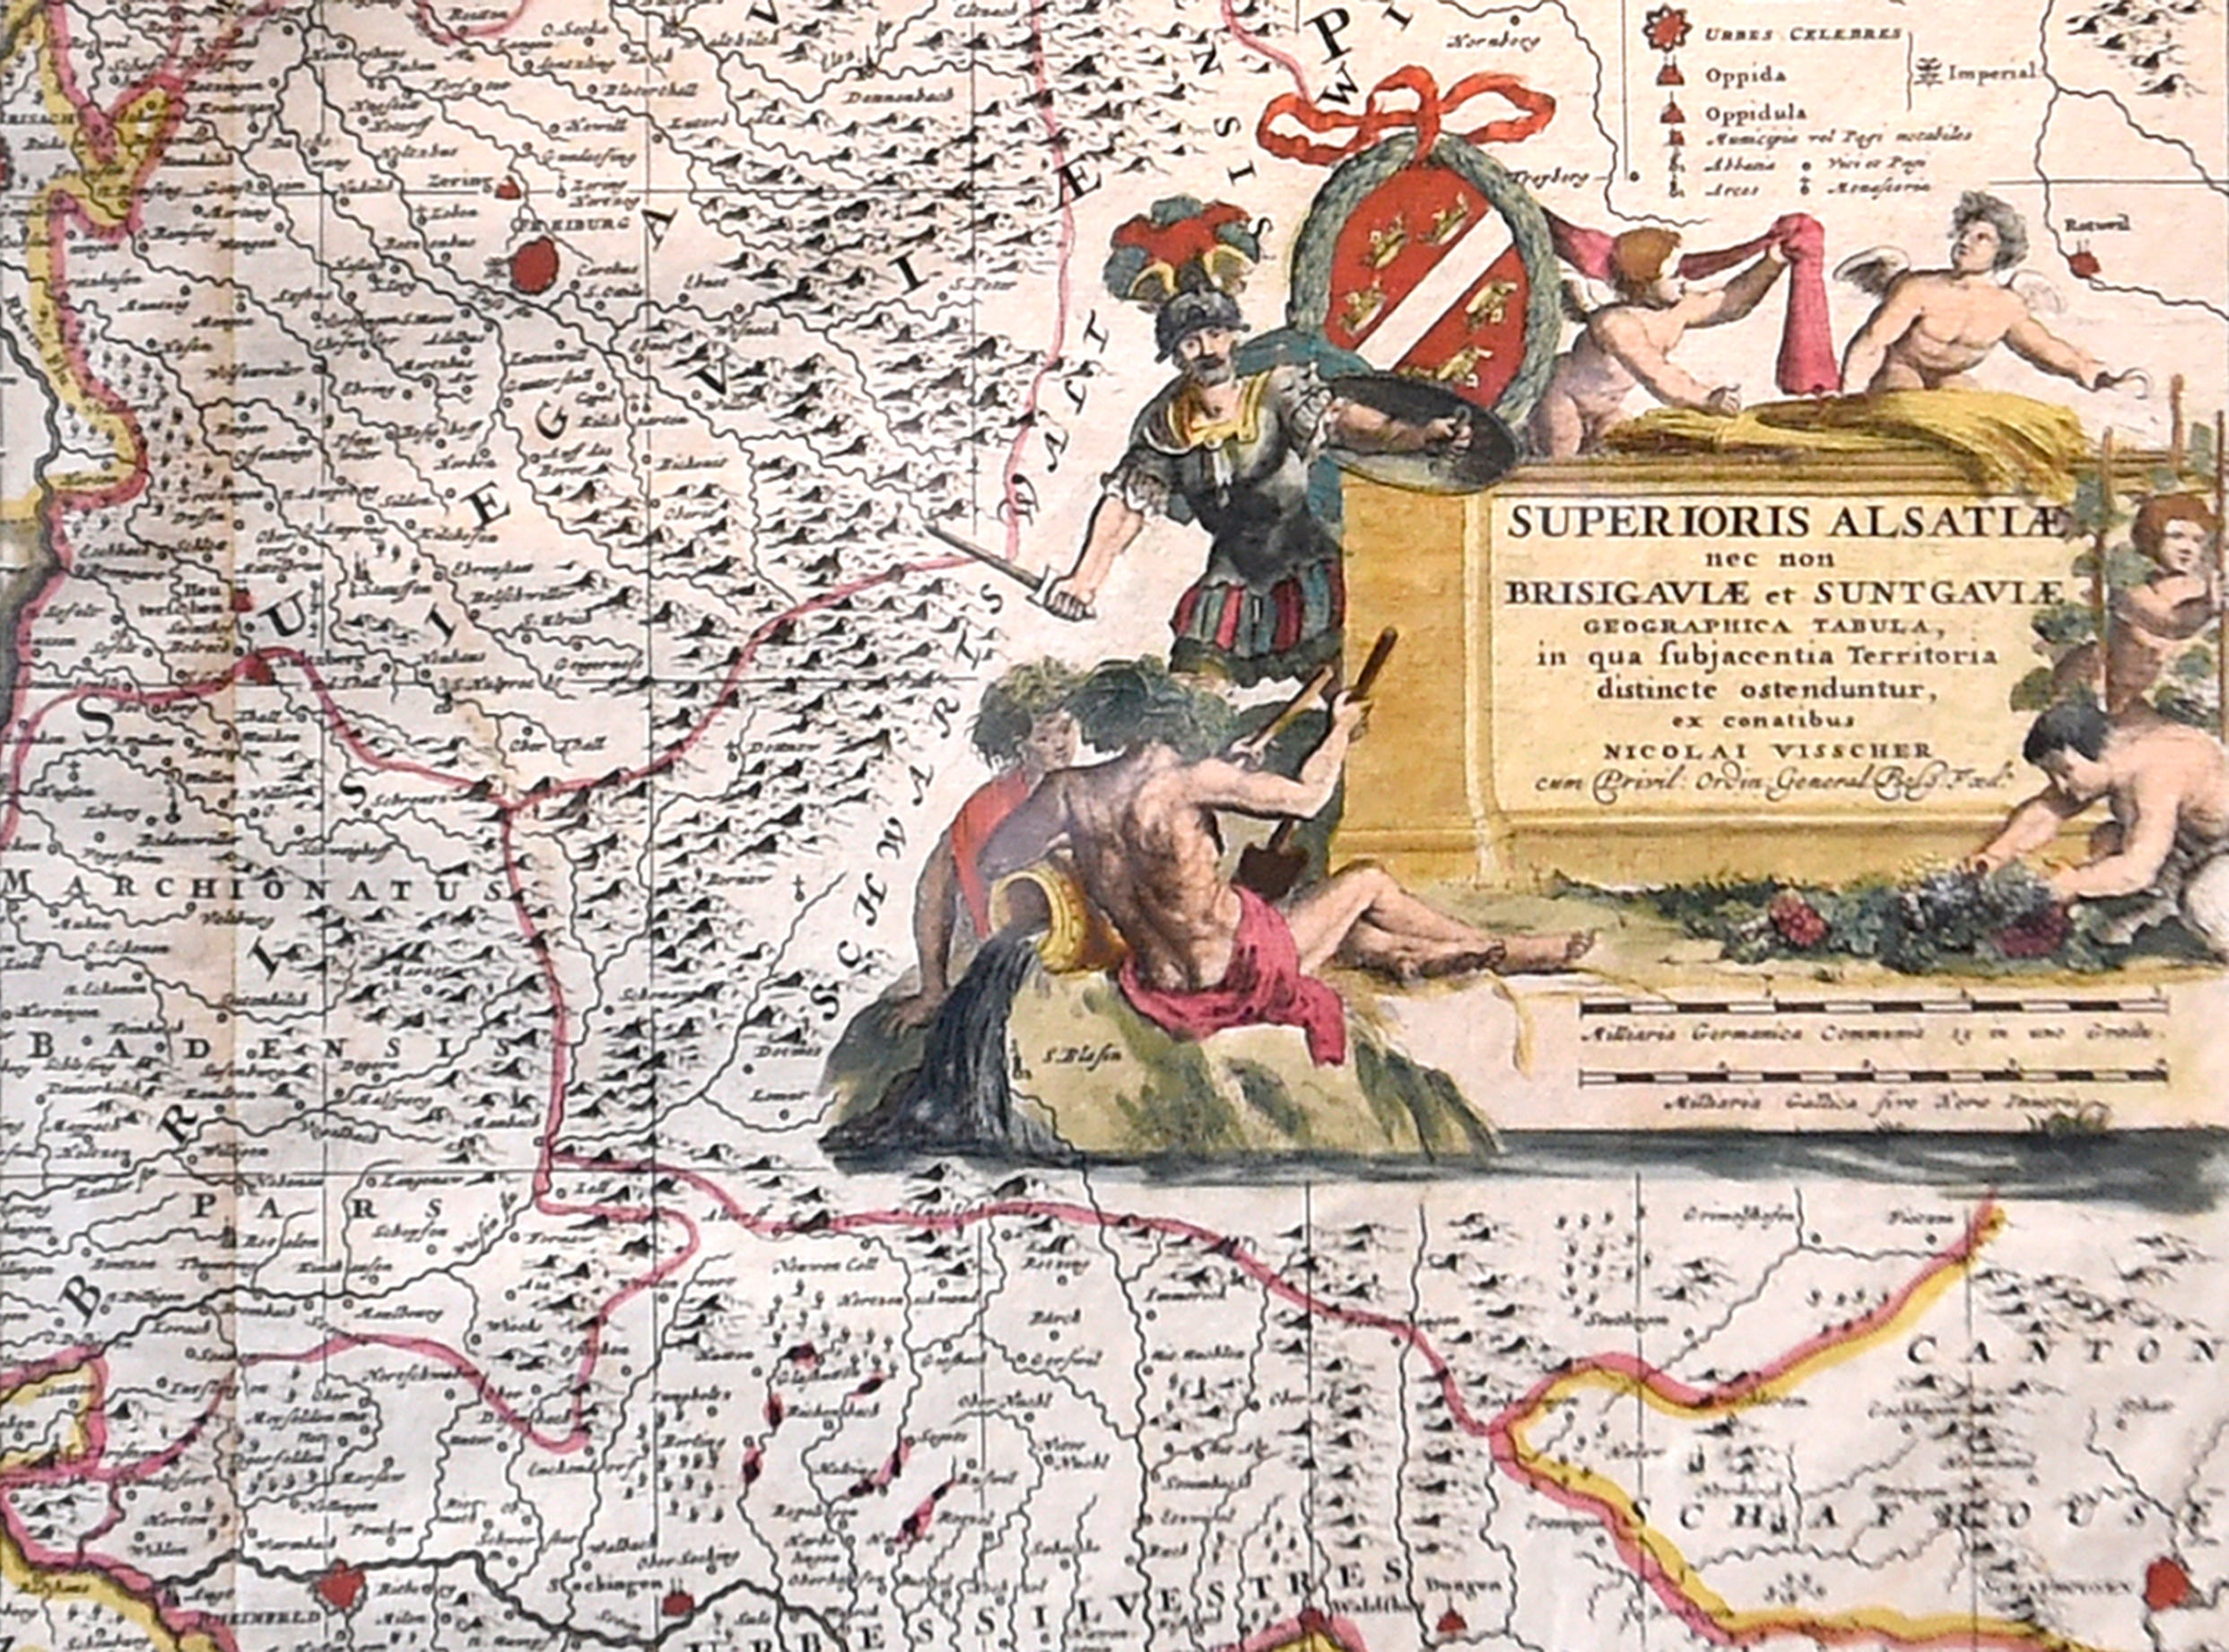 Detail in a copper-engraved and hand-colored map dating from 1680, showing the upper Alsace regions and Rhine River valley in Germany and Switzerland. The antique map is seen on display in UT's Burchfiel Geography Building on Friday, Feb. 20, 2015, and part of a larger set of 200 rare maps of Europe and other parts of the world, created between the 1500s and 1800s, recently donated to UT's McClung Museum of Natural History and Culture.